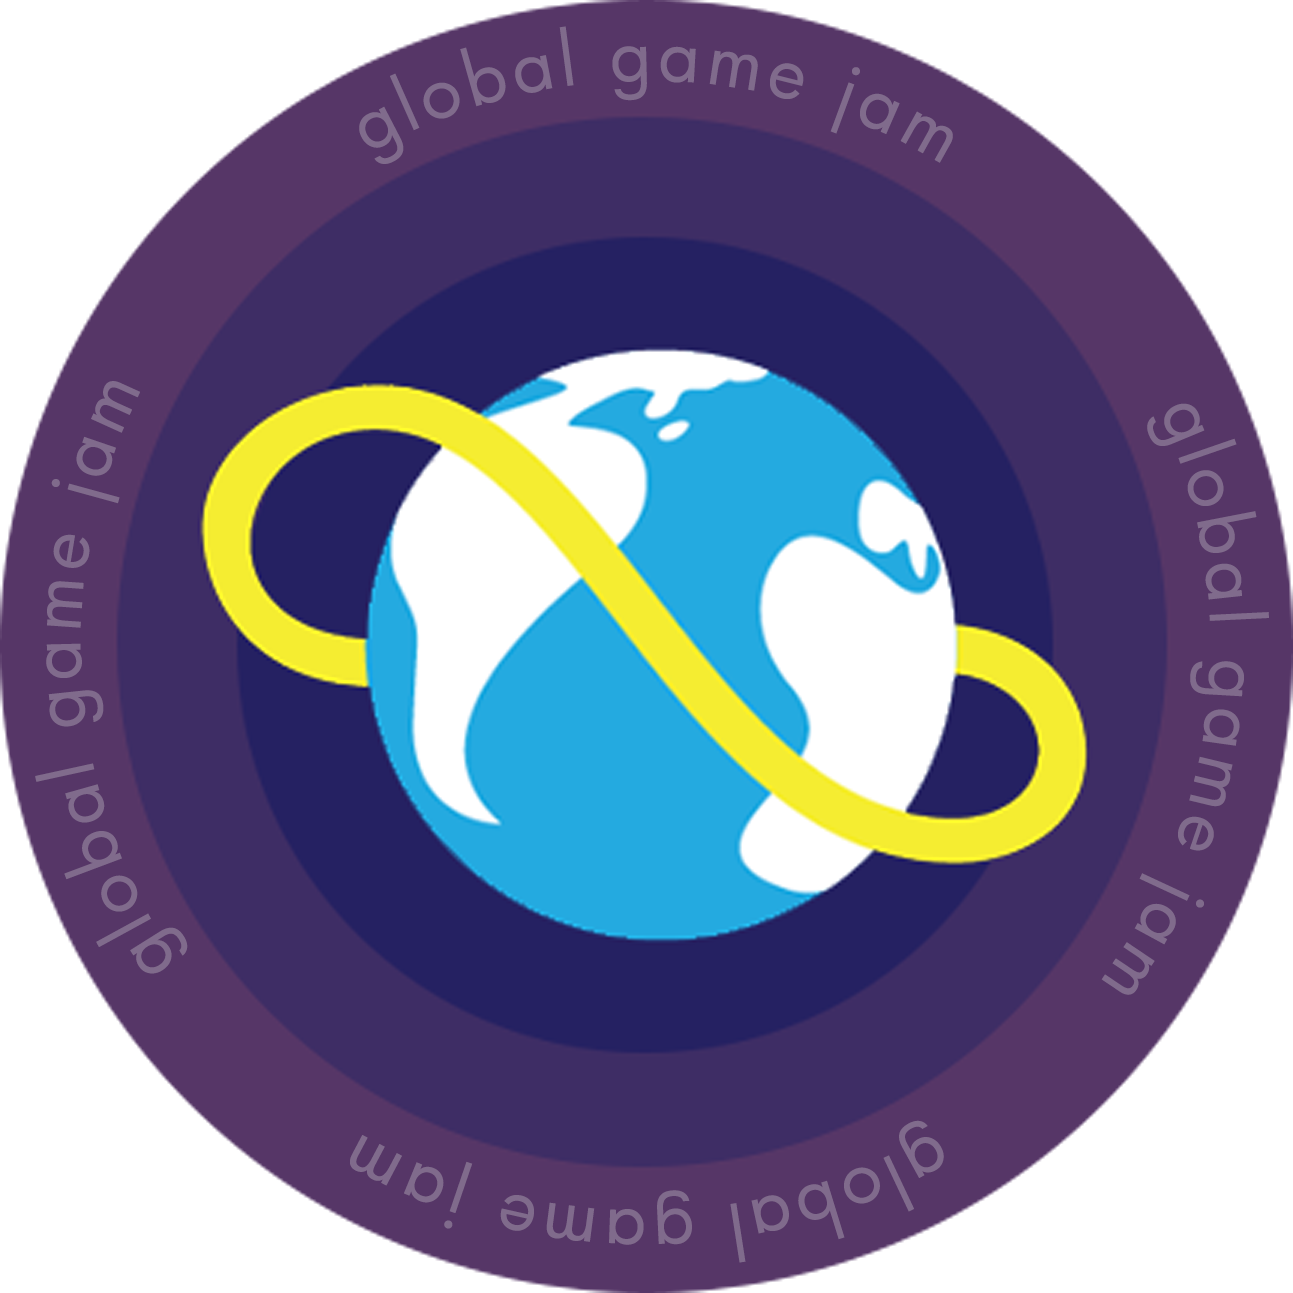 Planets clipart individual. Green global game jam